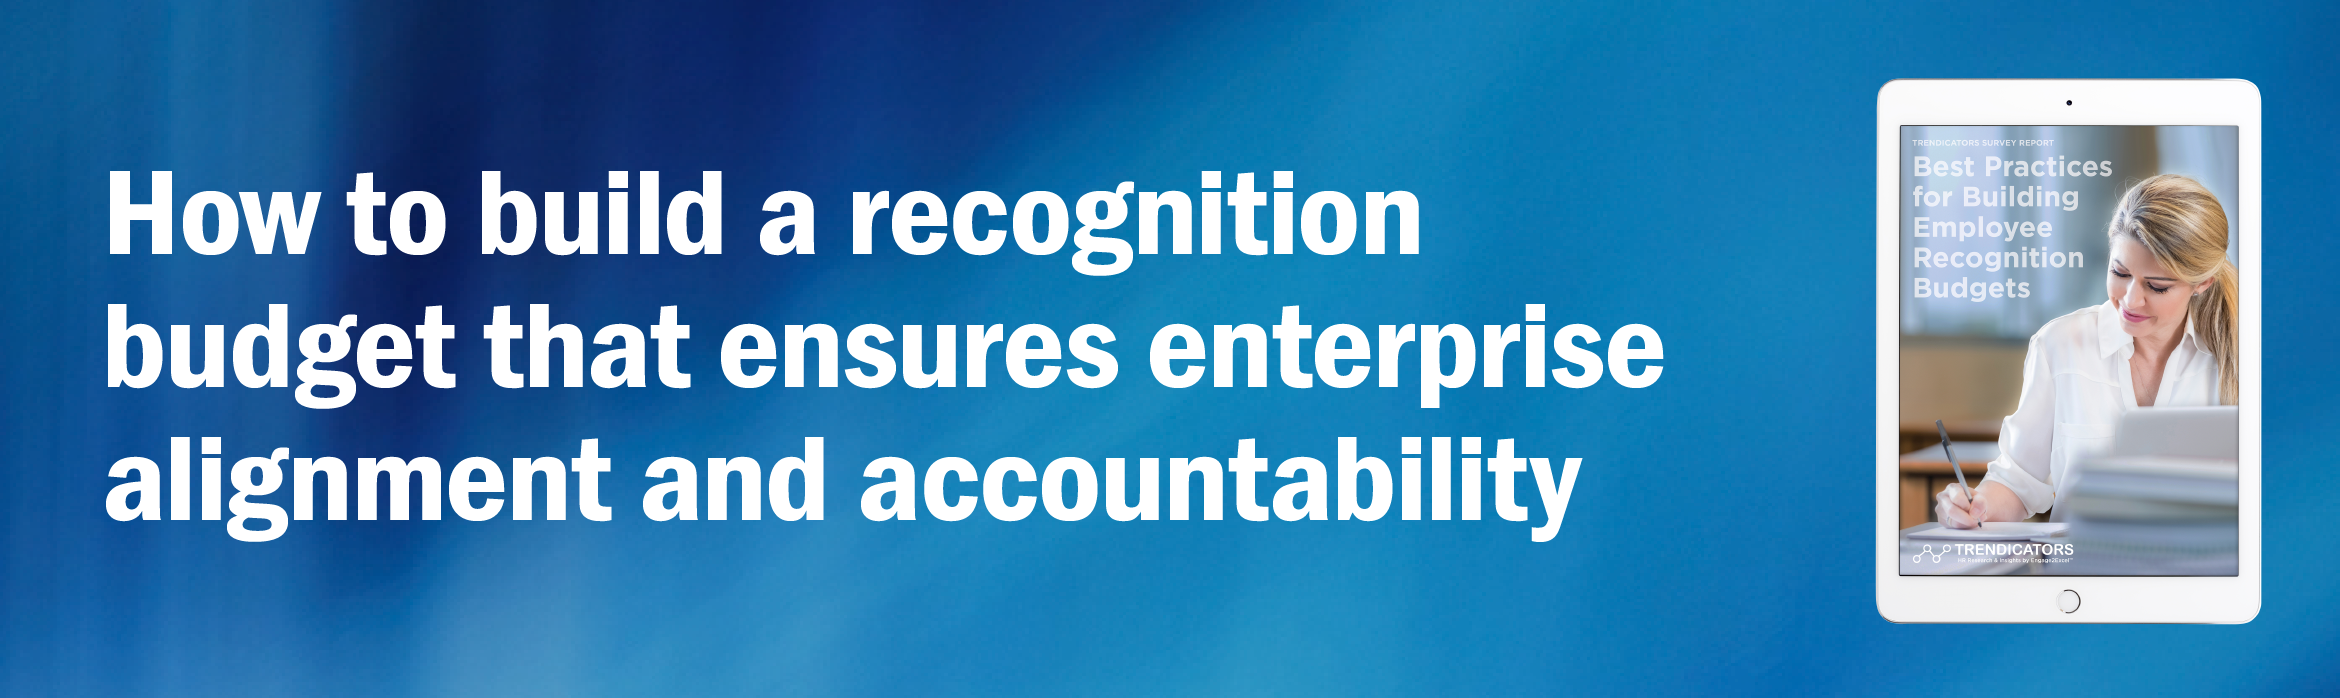 How to build a recognition budget that ensures enterprise alignment and accountability